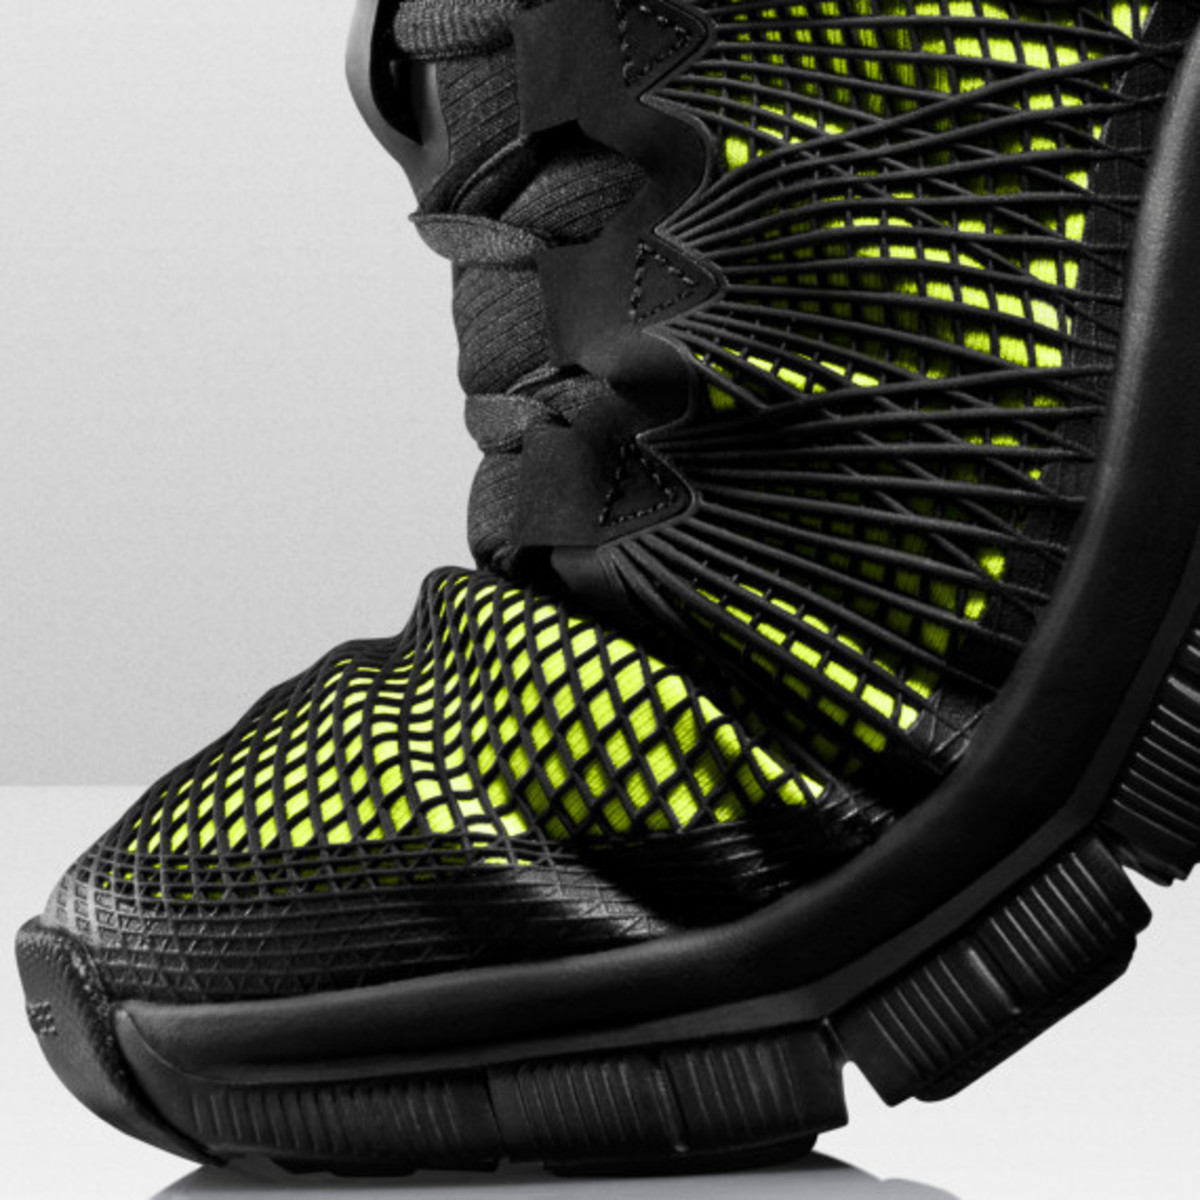 Nike Free Trainer 3.0 Mid Shield - Officially Unveiled - 4